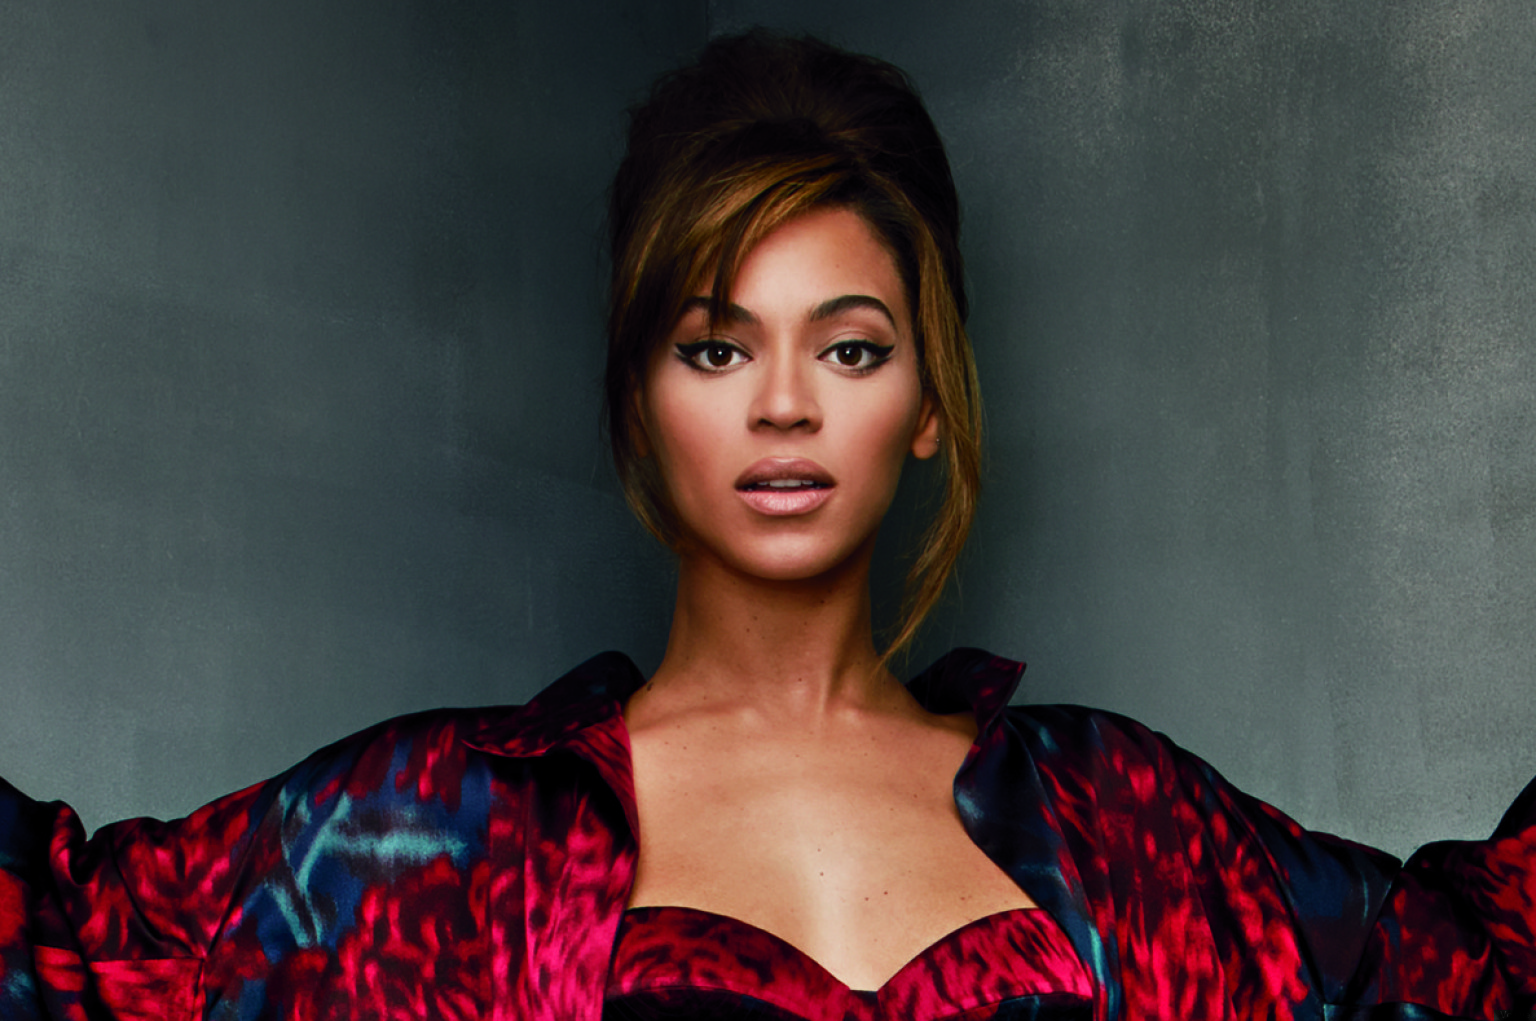 beyonce on vogues march 2013 cover is unsurprisingly